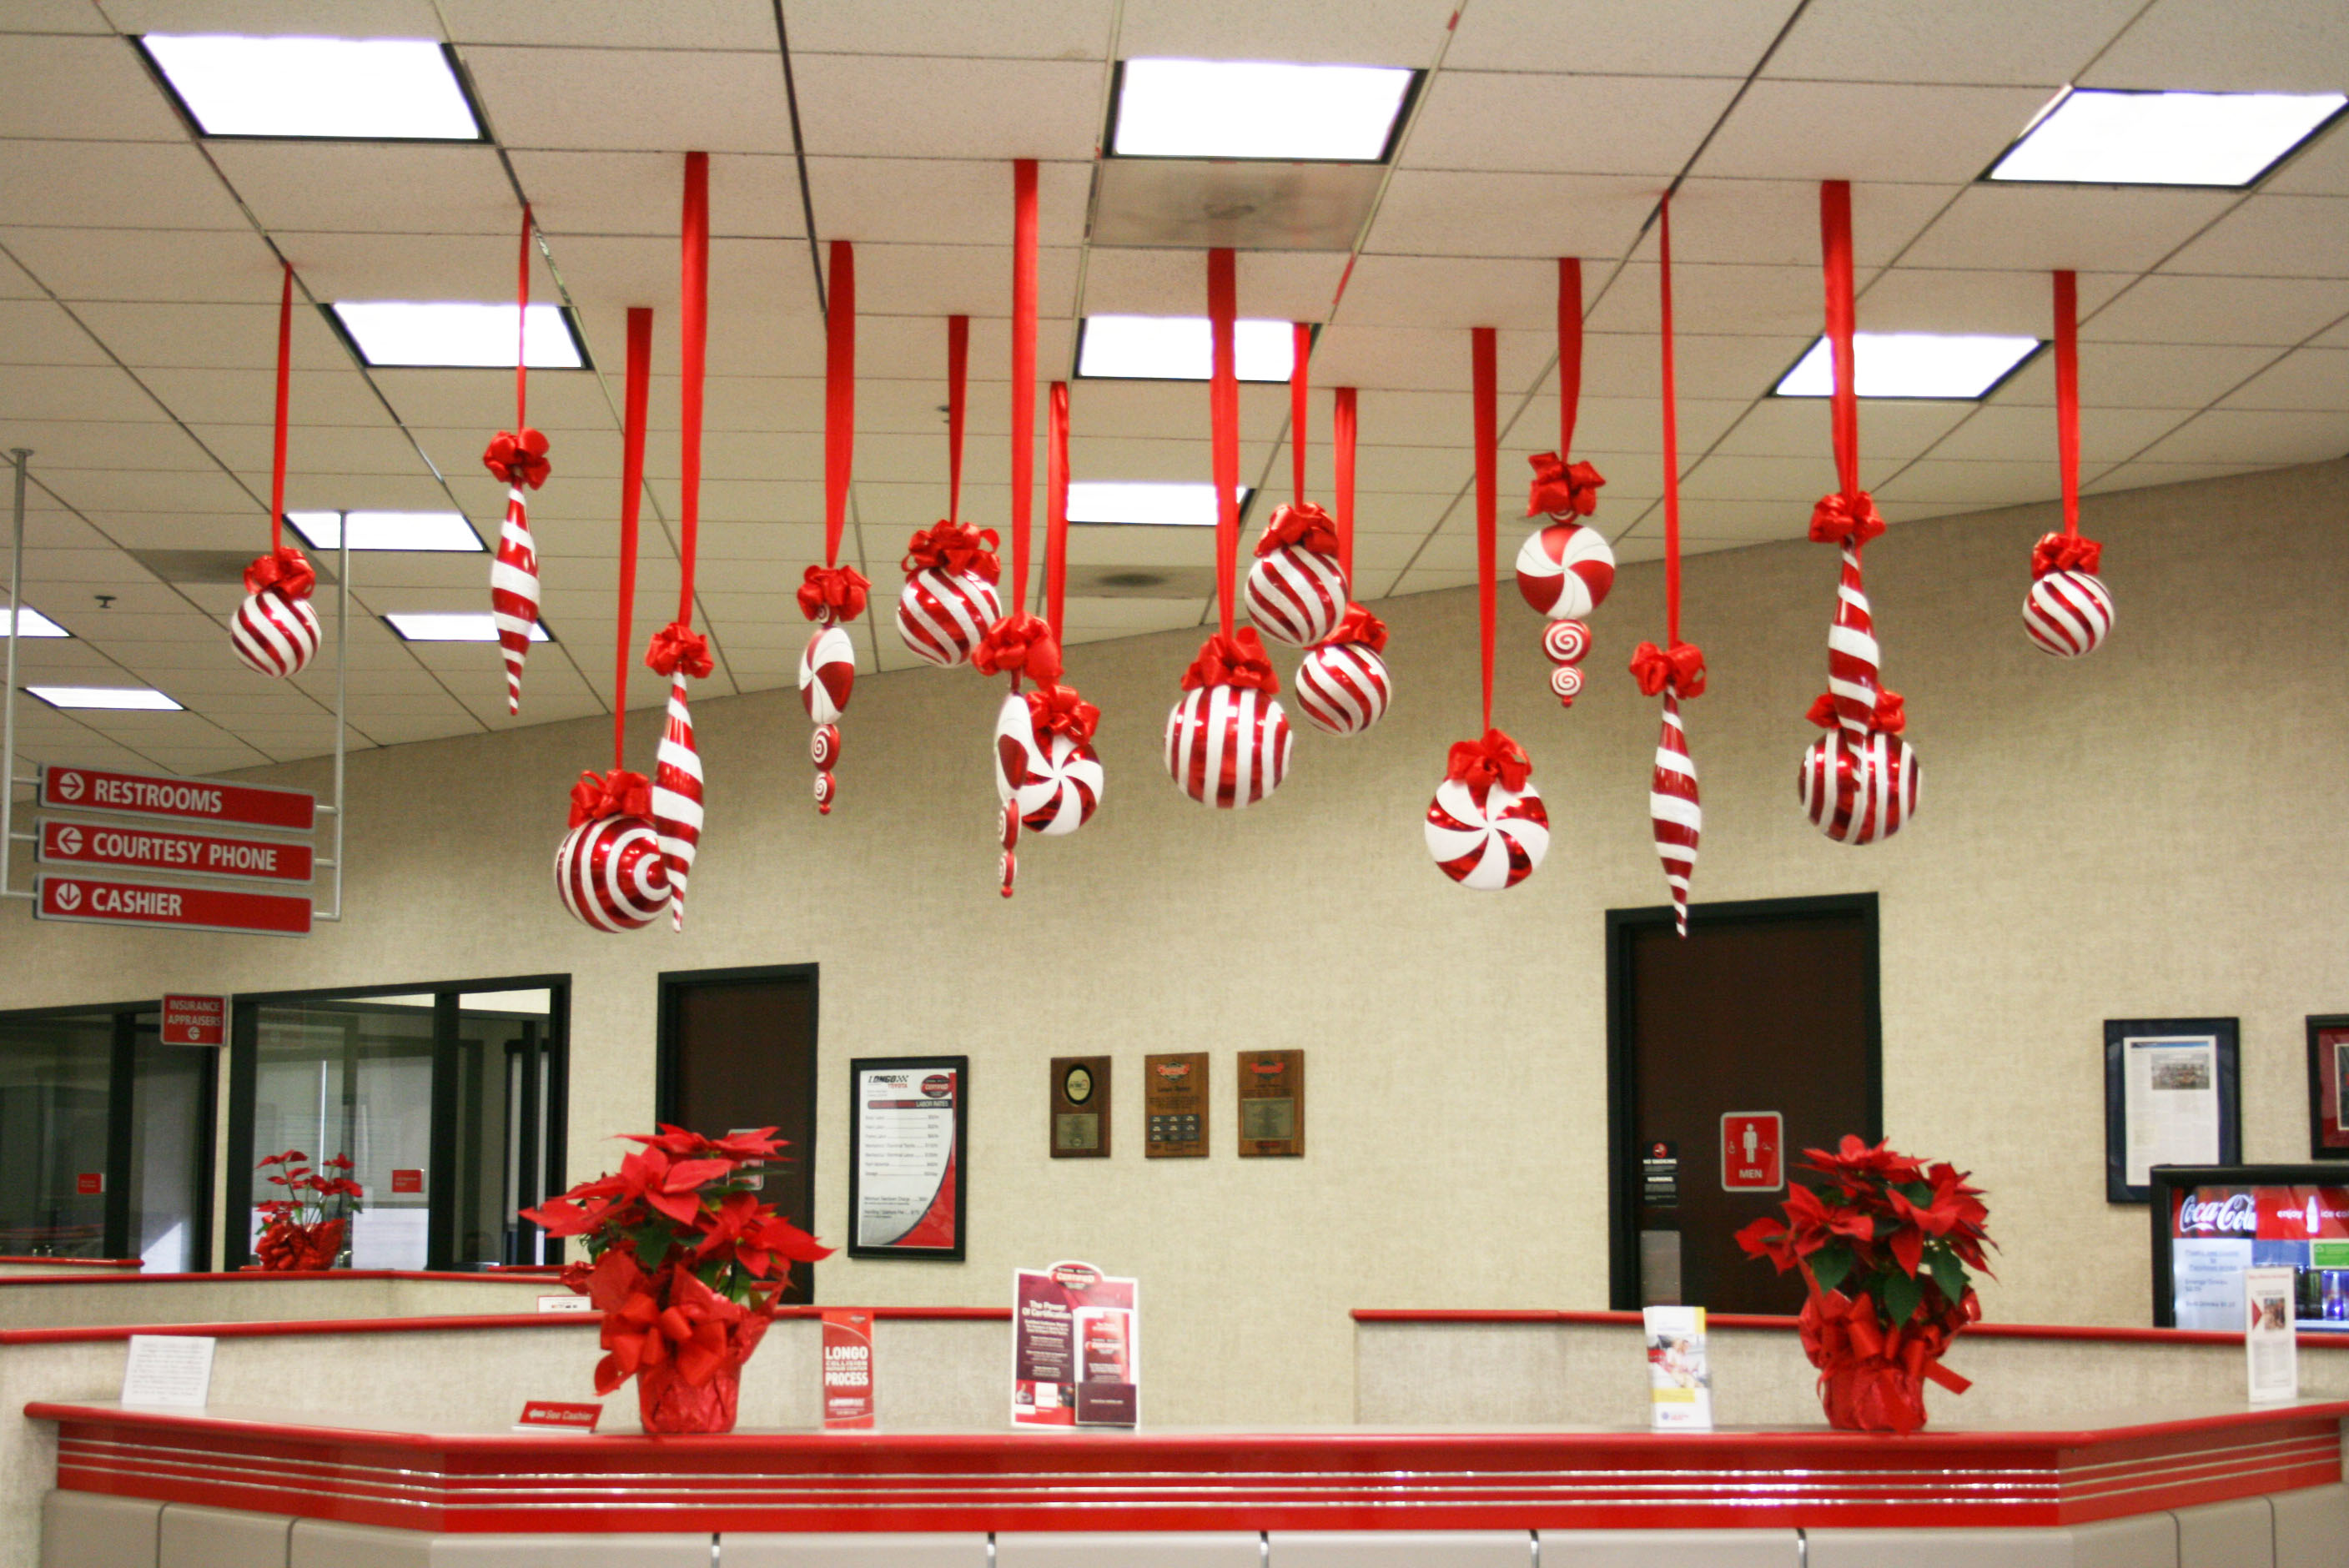 Bay decoration for christmas in the office - Poinsettia Reception Christmas Poinsettias Desk